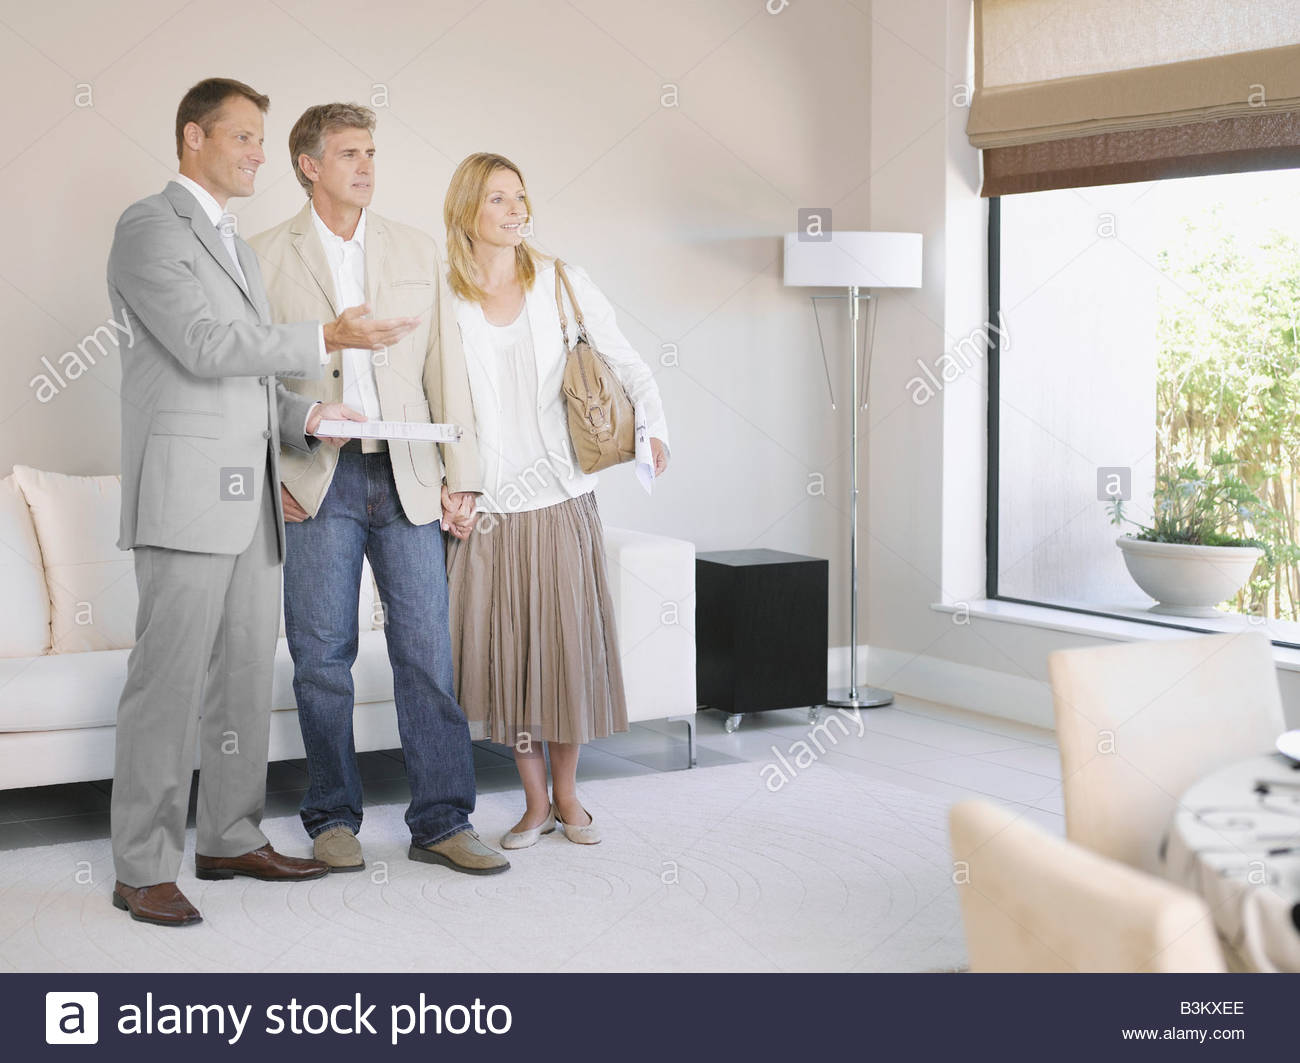 Real estate agent showing couple new home - Stock Image